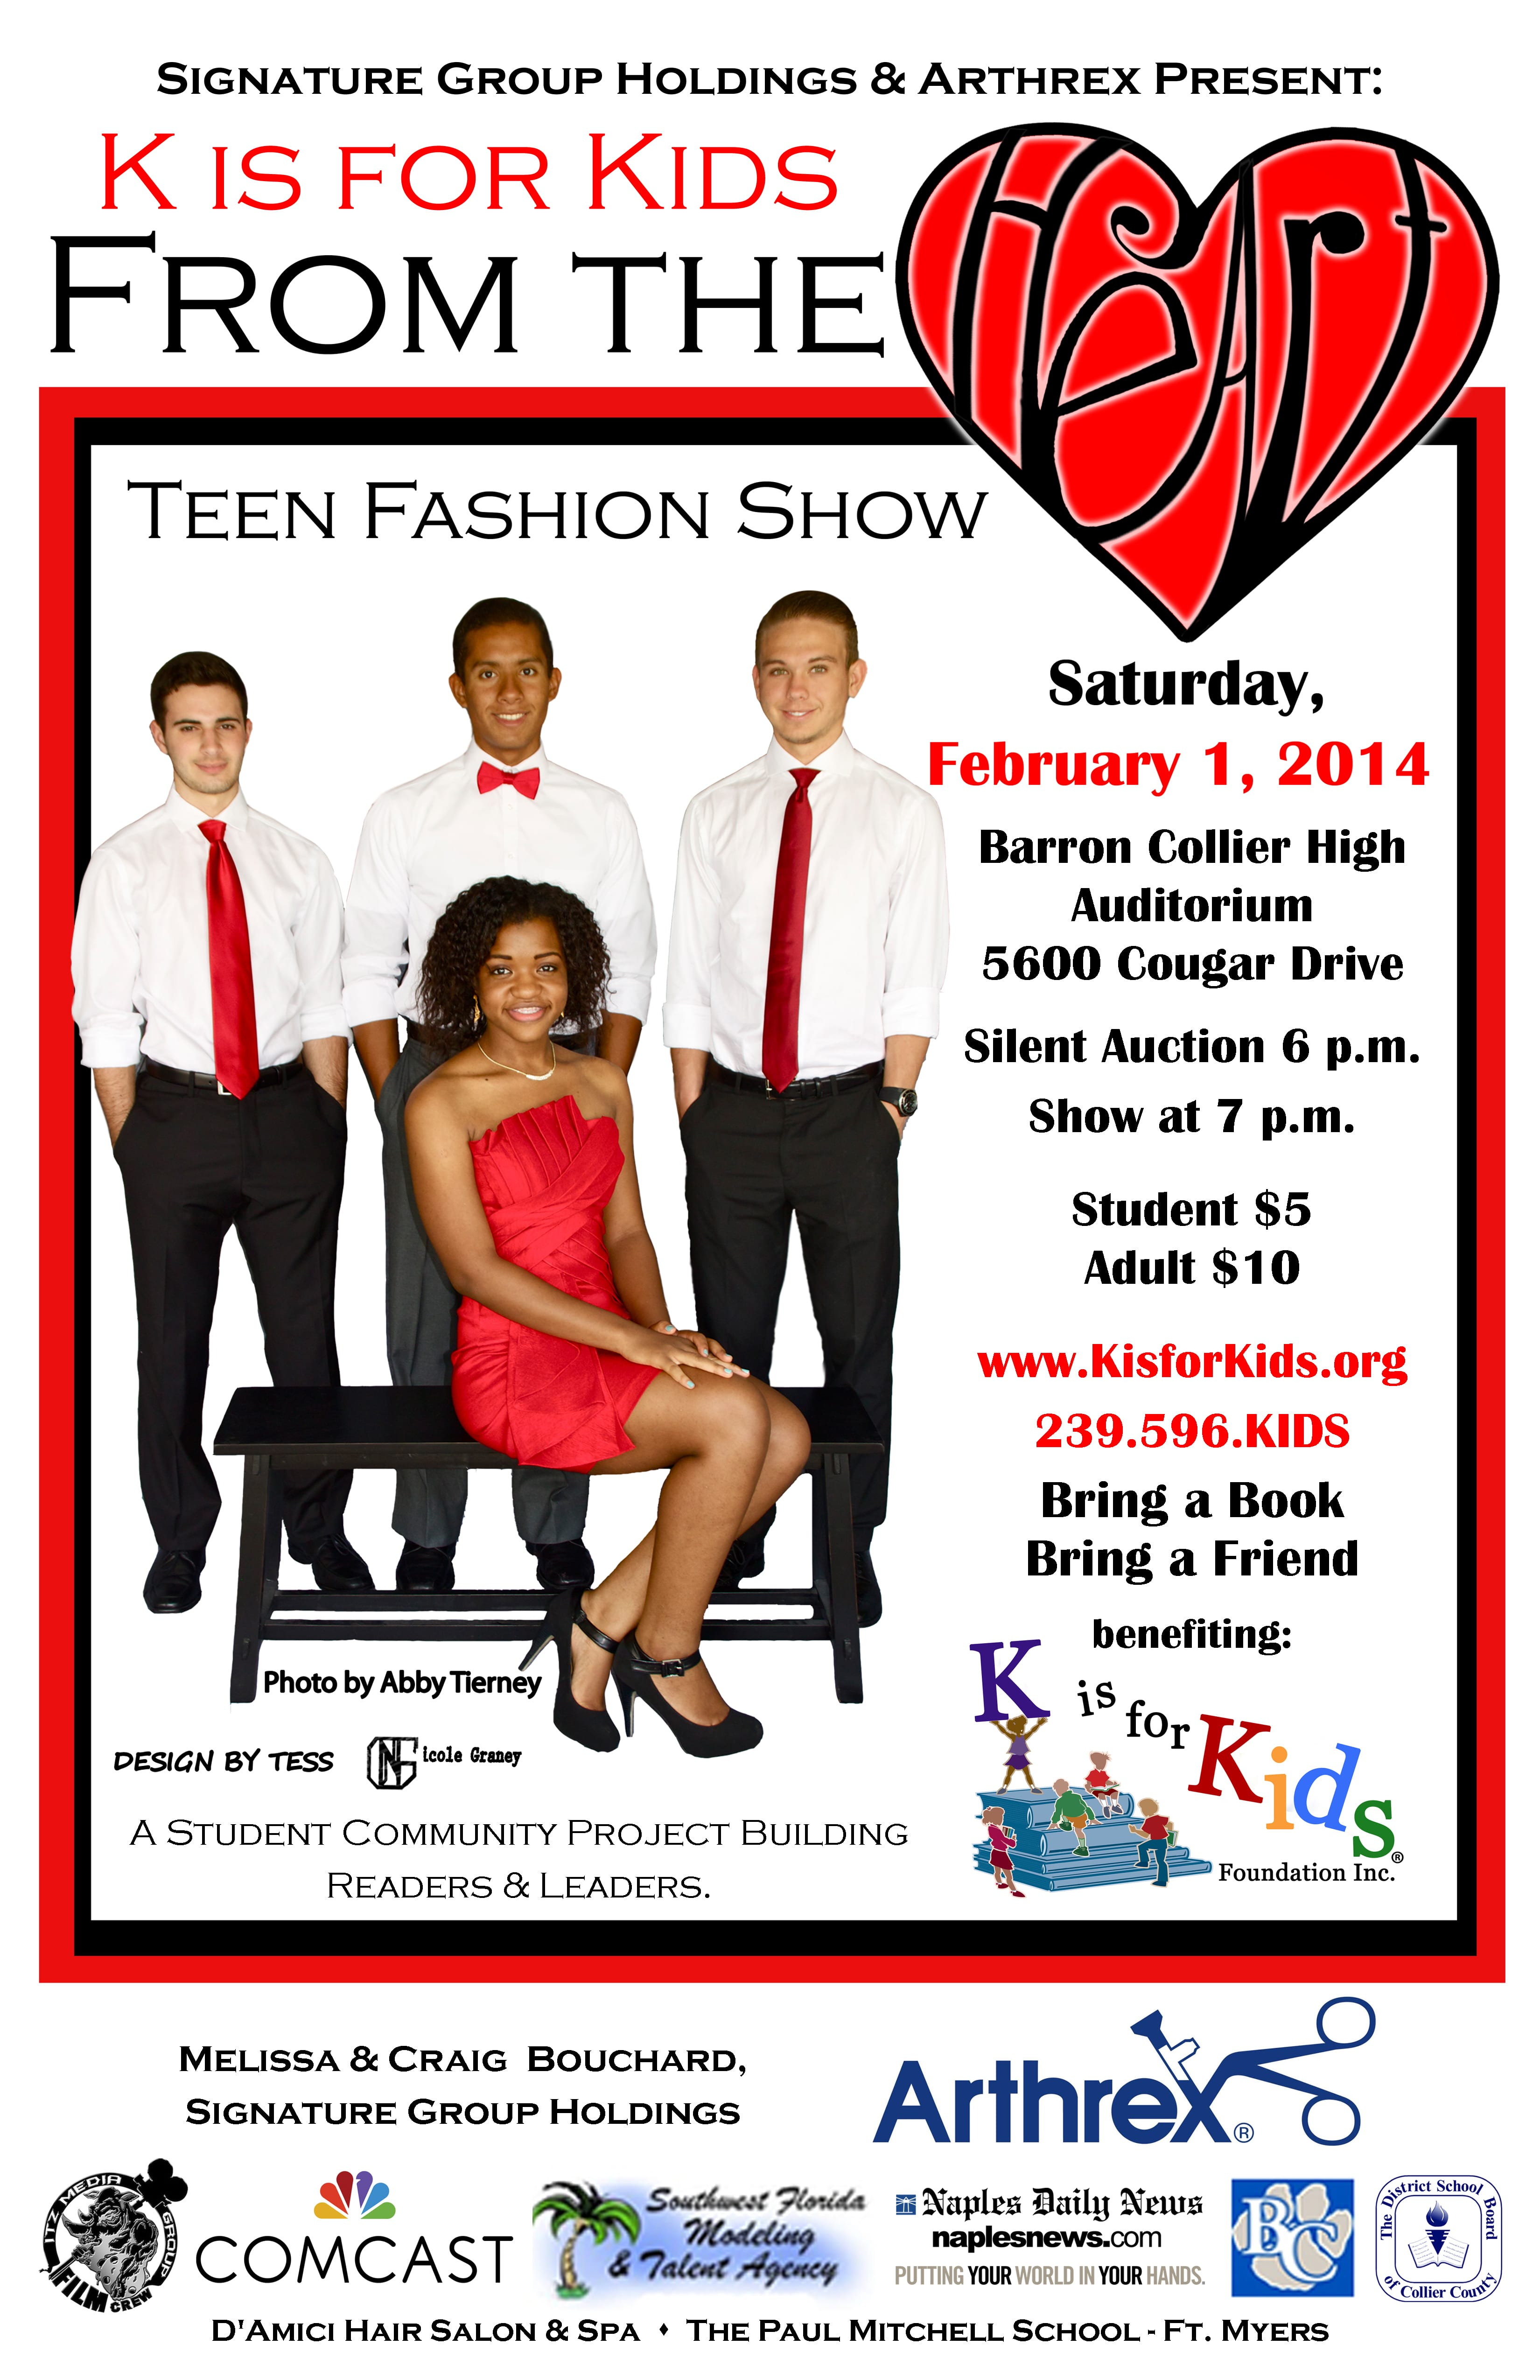 Prom fashion show poster